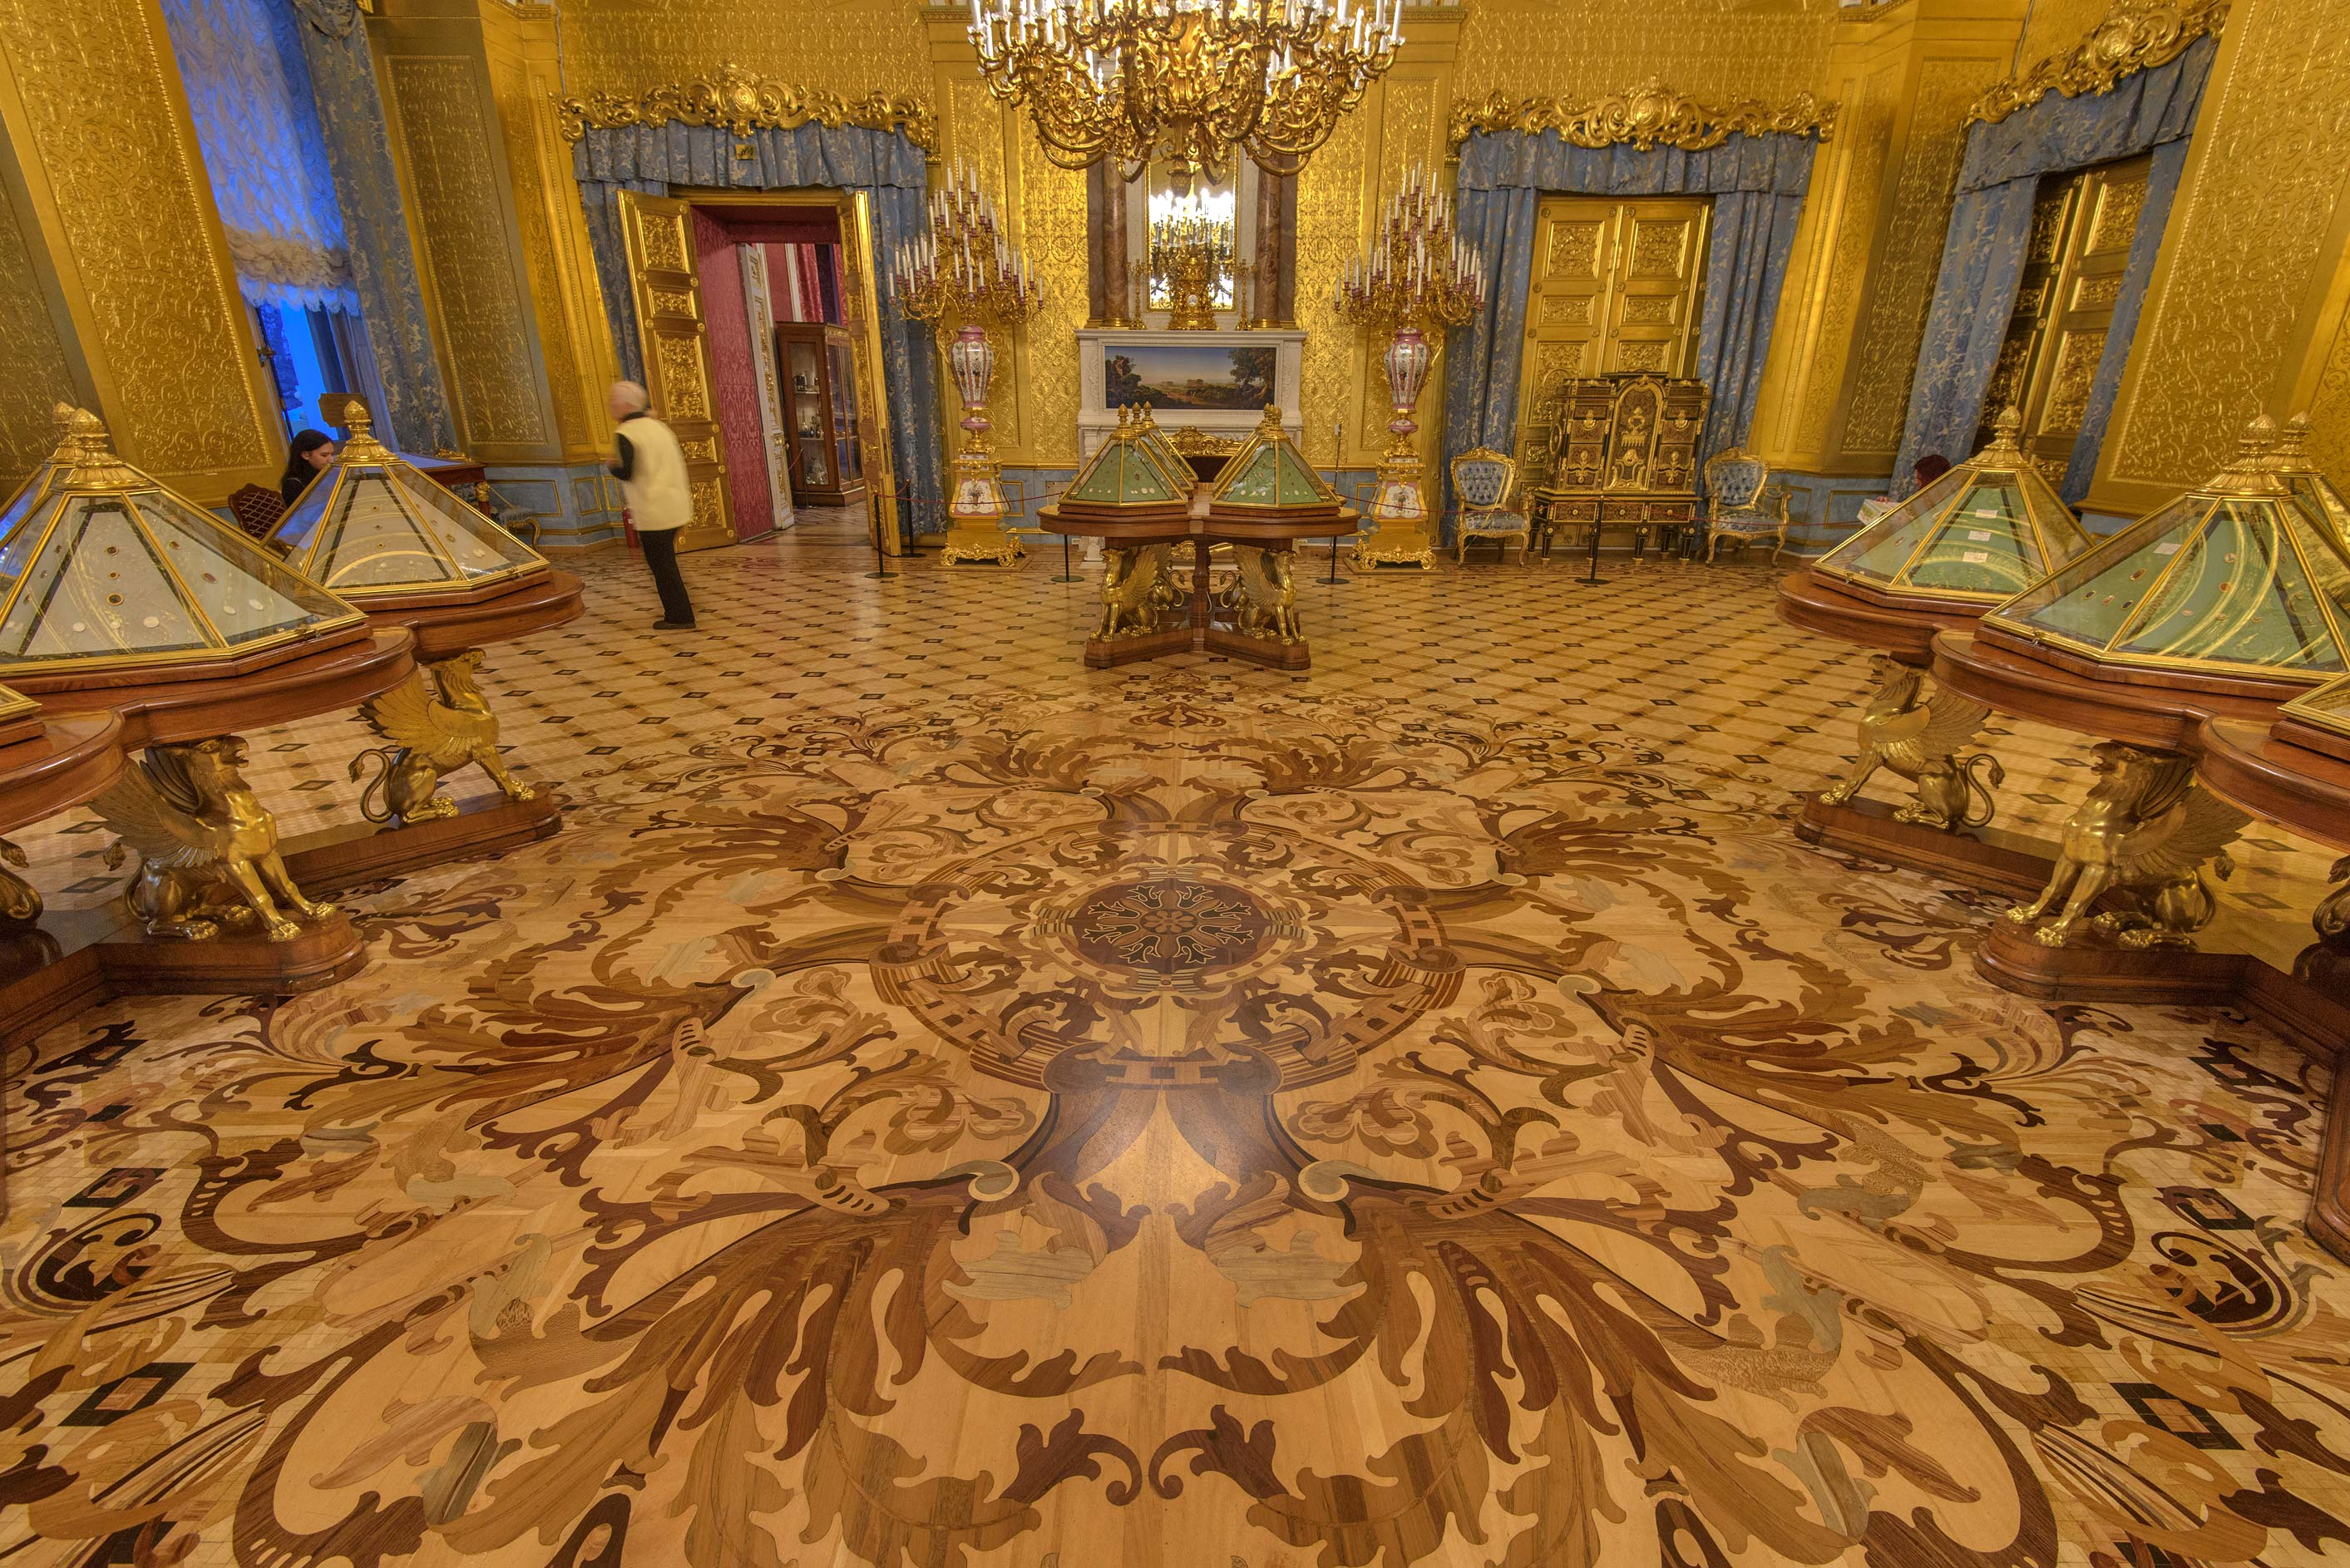 Parquet floor of gold drawing room in Hermitage Museum. St.Petersburg, Russia